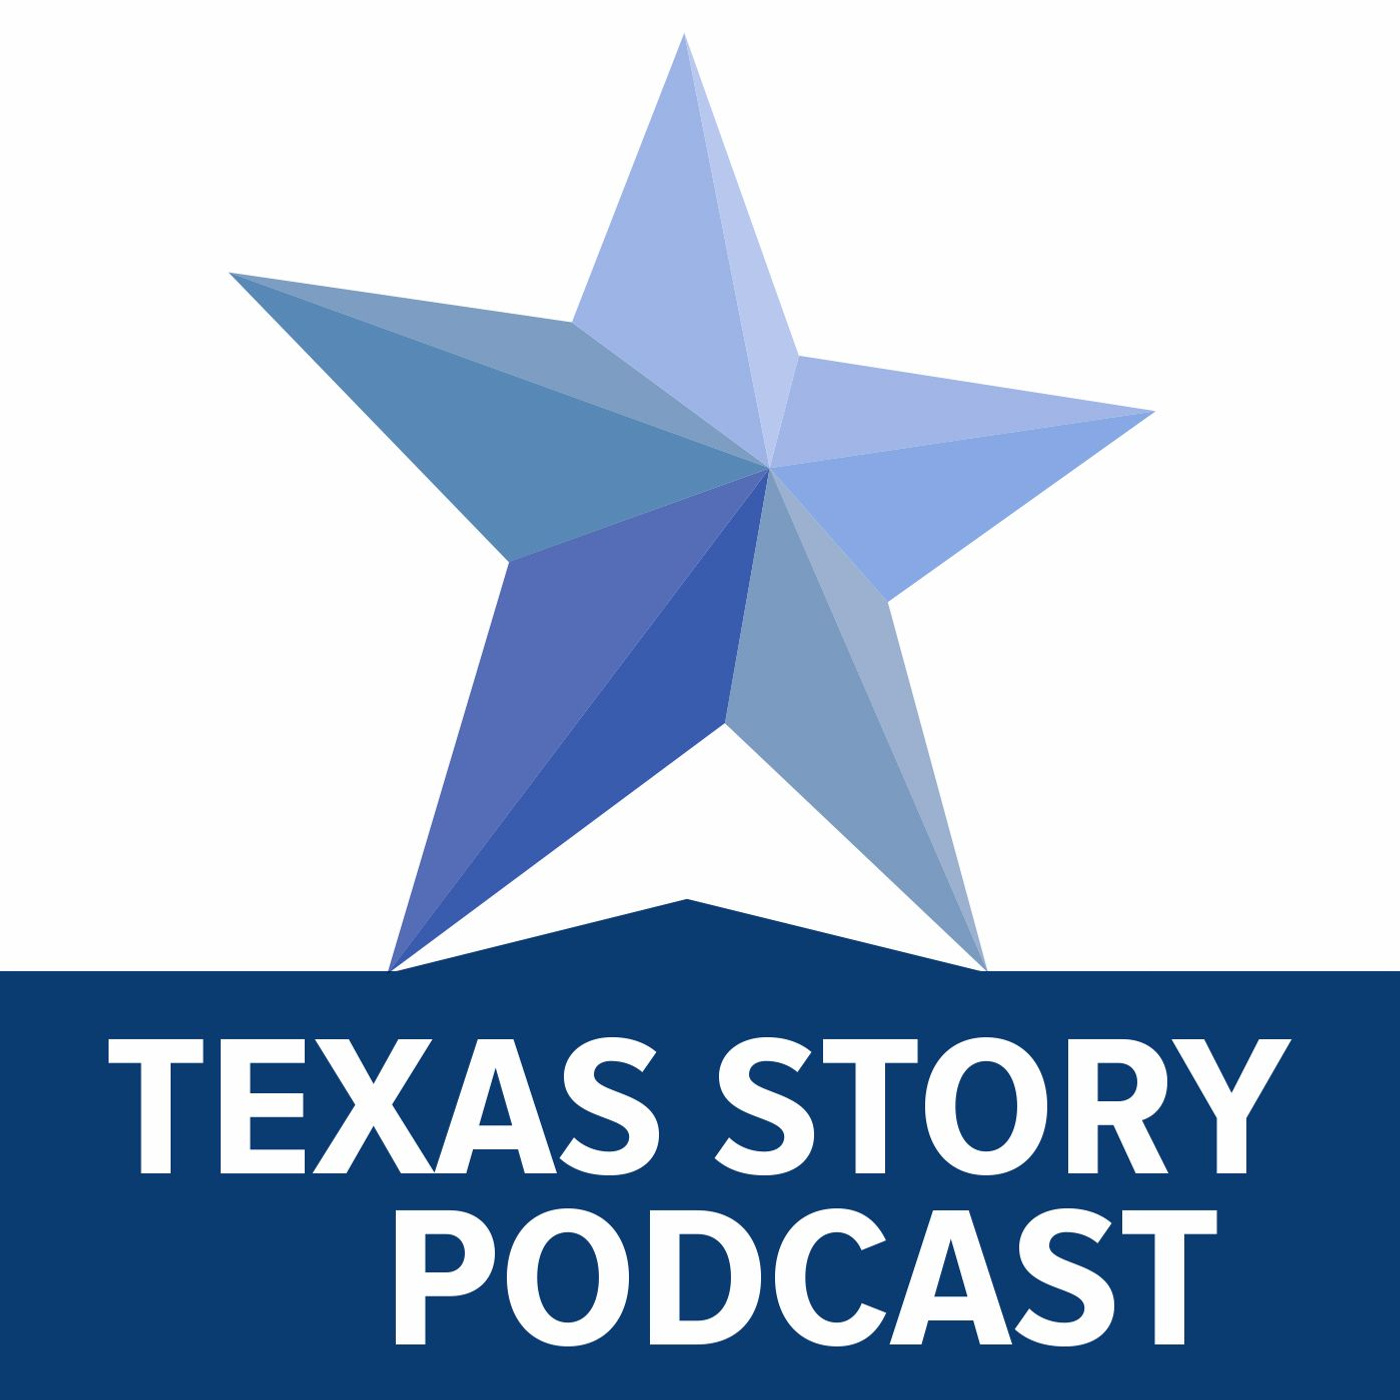 Episode 2 // Stevie Ray Vaughan: A Texas Story Podcast